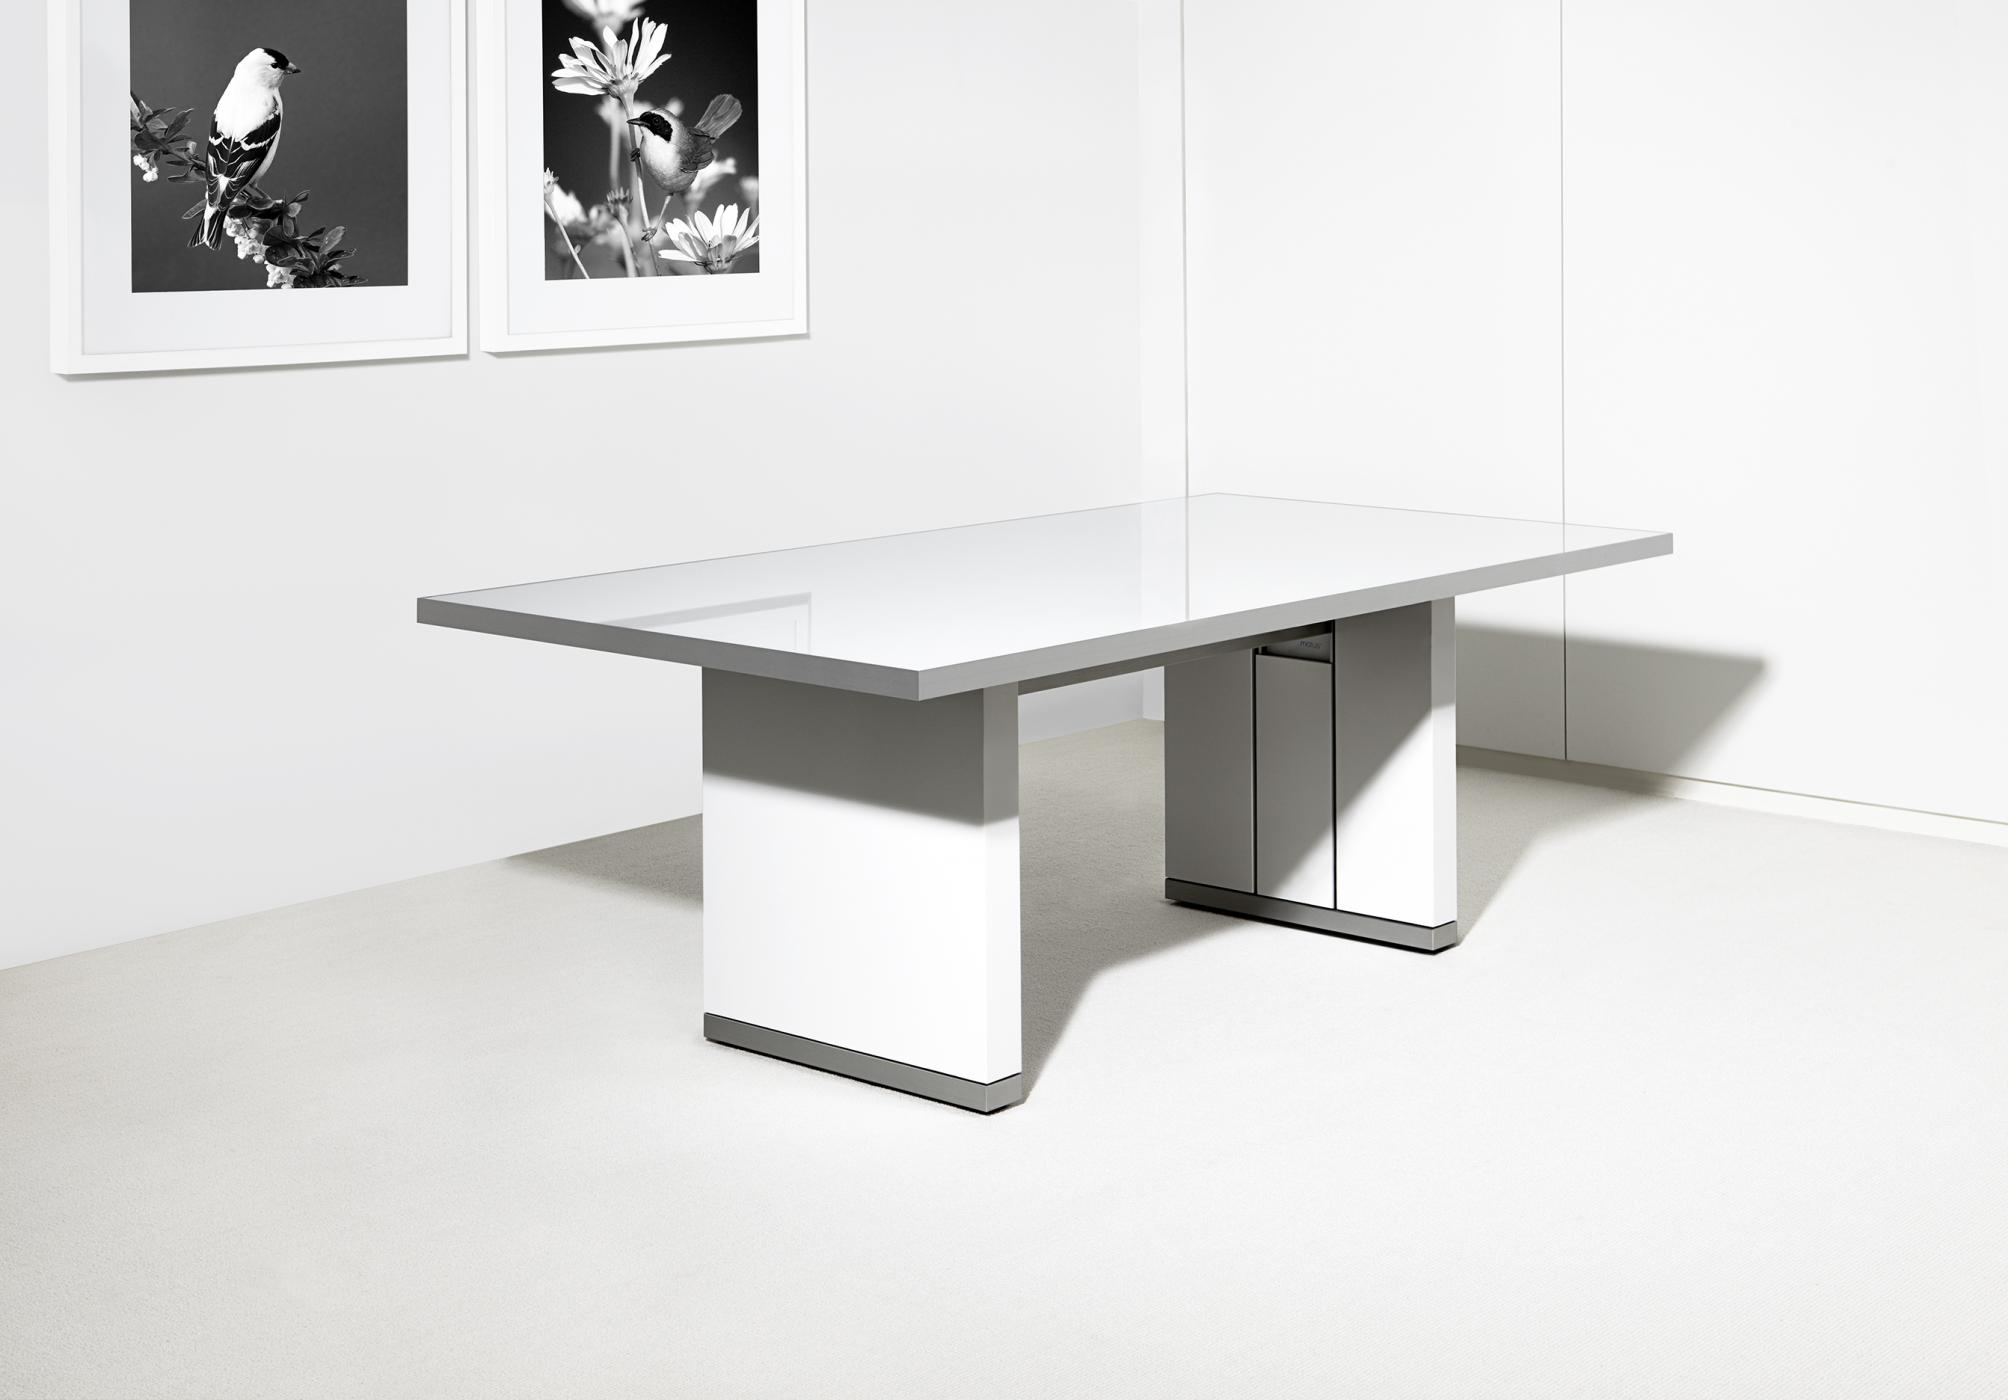 Motus tables are available with glass surfaces in any color tone.